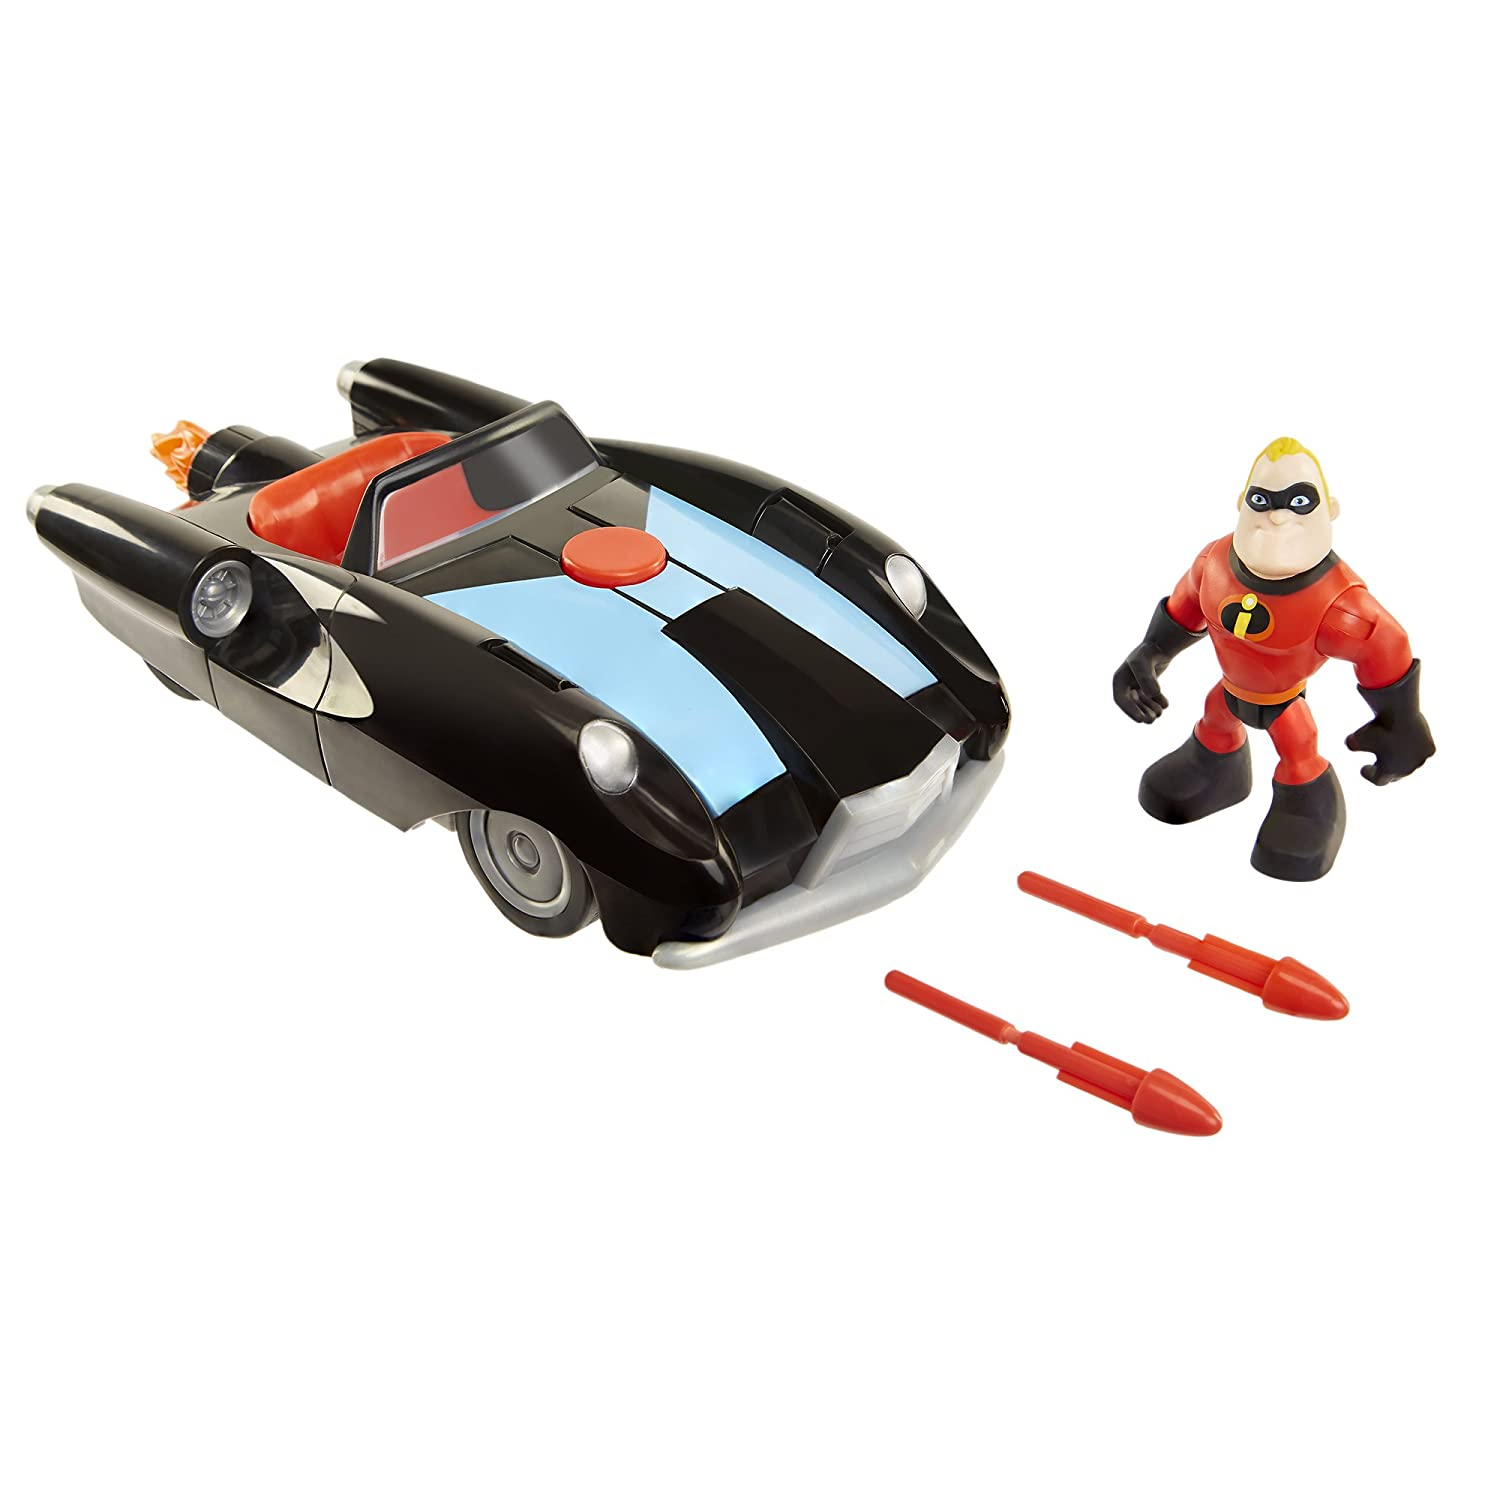 The Incredibles 2 Hydroliner (Ship) Action Playset comes with Elastigirl Junior Super Figure Jakks Pacific -- Import 76869-1-PLY